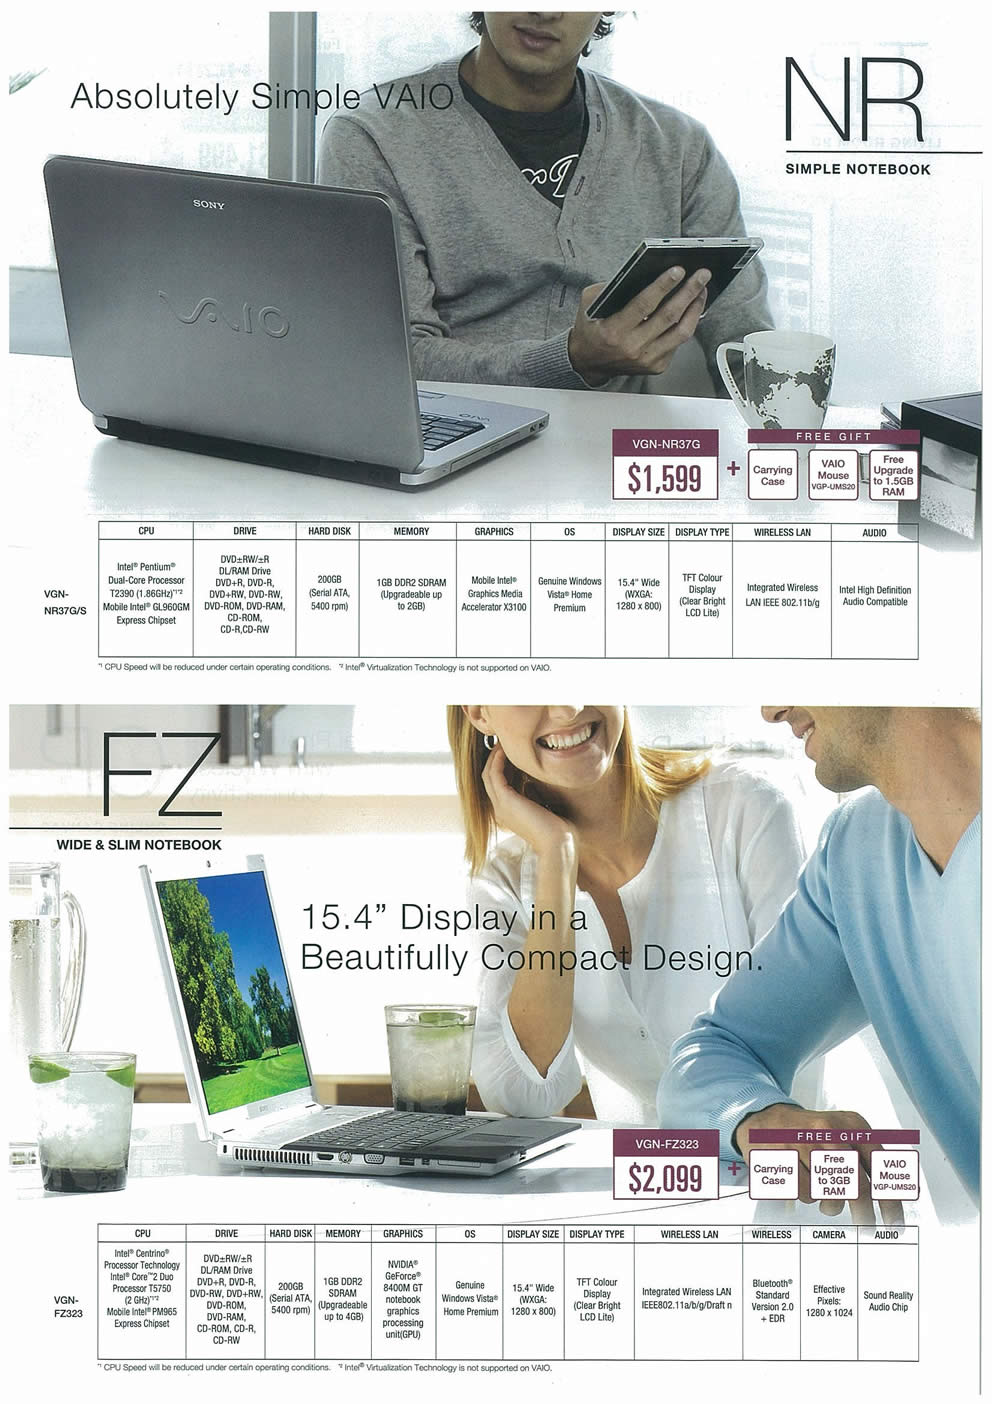 Comex 2008 price list image brochure of Sony VAIO Page 5